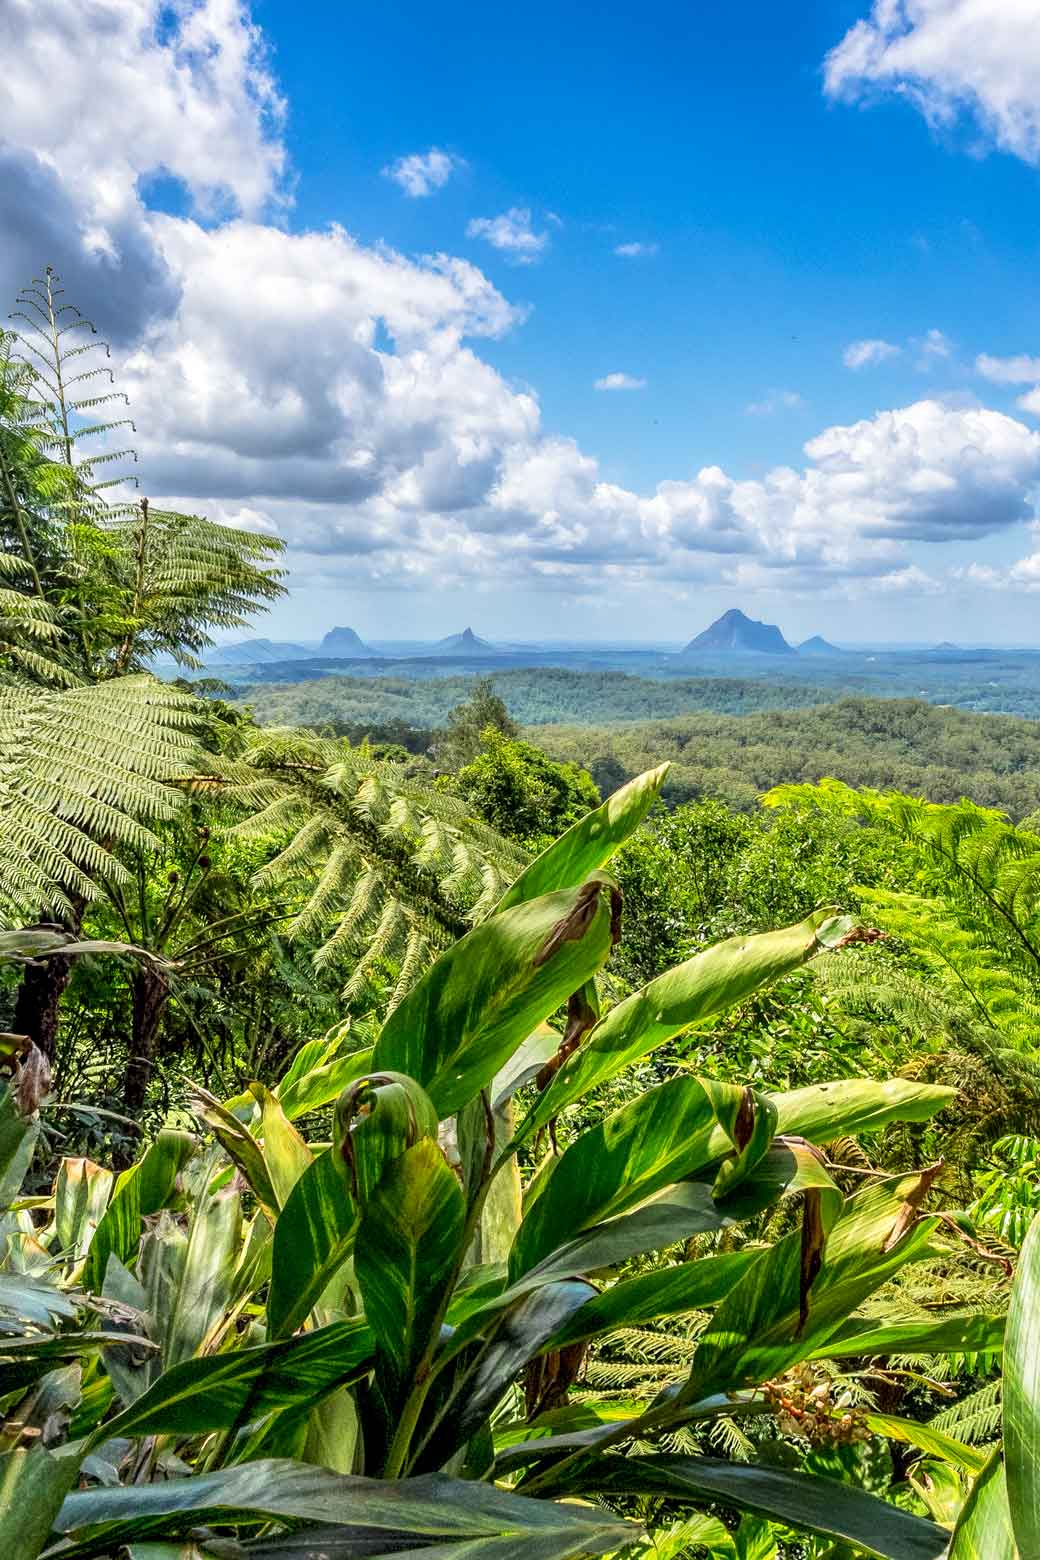 View from Maleny botanic garden out to the Glasshouse Mountains